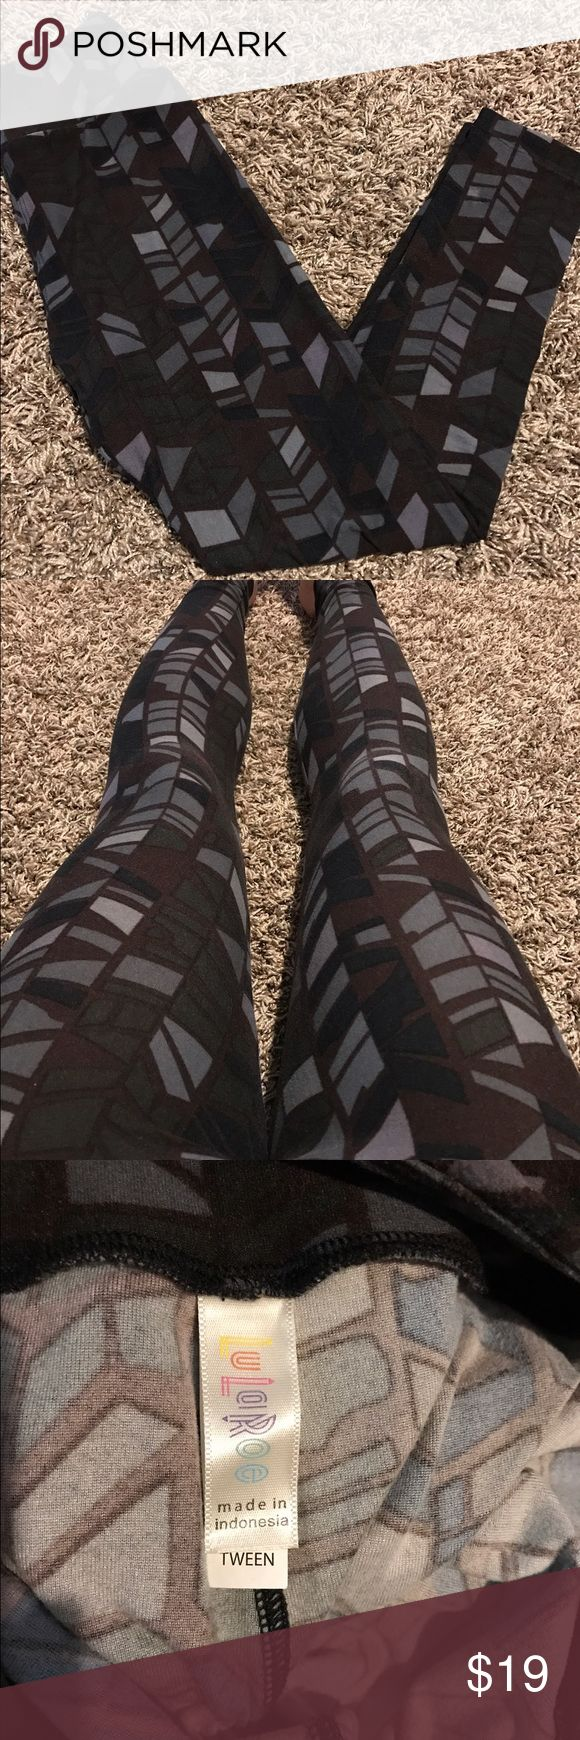 LuLaRoe Tween leggings. Tween leggings that fit like OS. Cool pattern with brown, black, grey and olive tones. Worn and washed once . It has a TINY bit of piling hence the discount. Still in great condition. LuLaRoe Pants Leggings